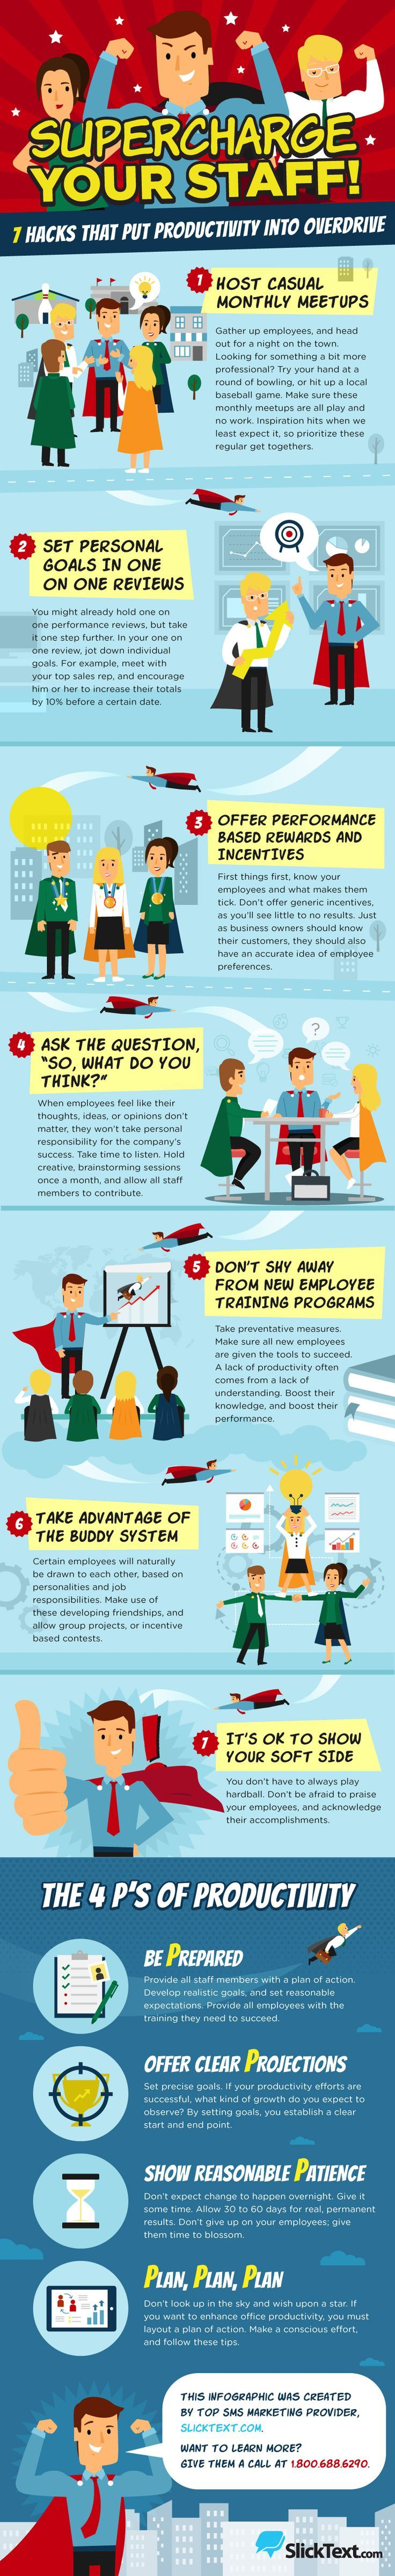 Supercharge Your Staff: 7 Hacks That Put Productivity Into Overdrive #Infographic #Productivity #Business http://itz-my.com